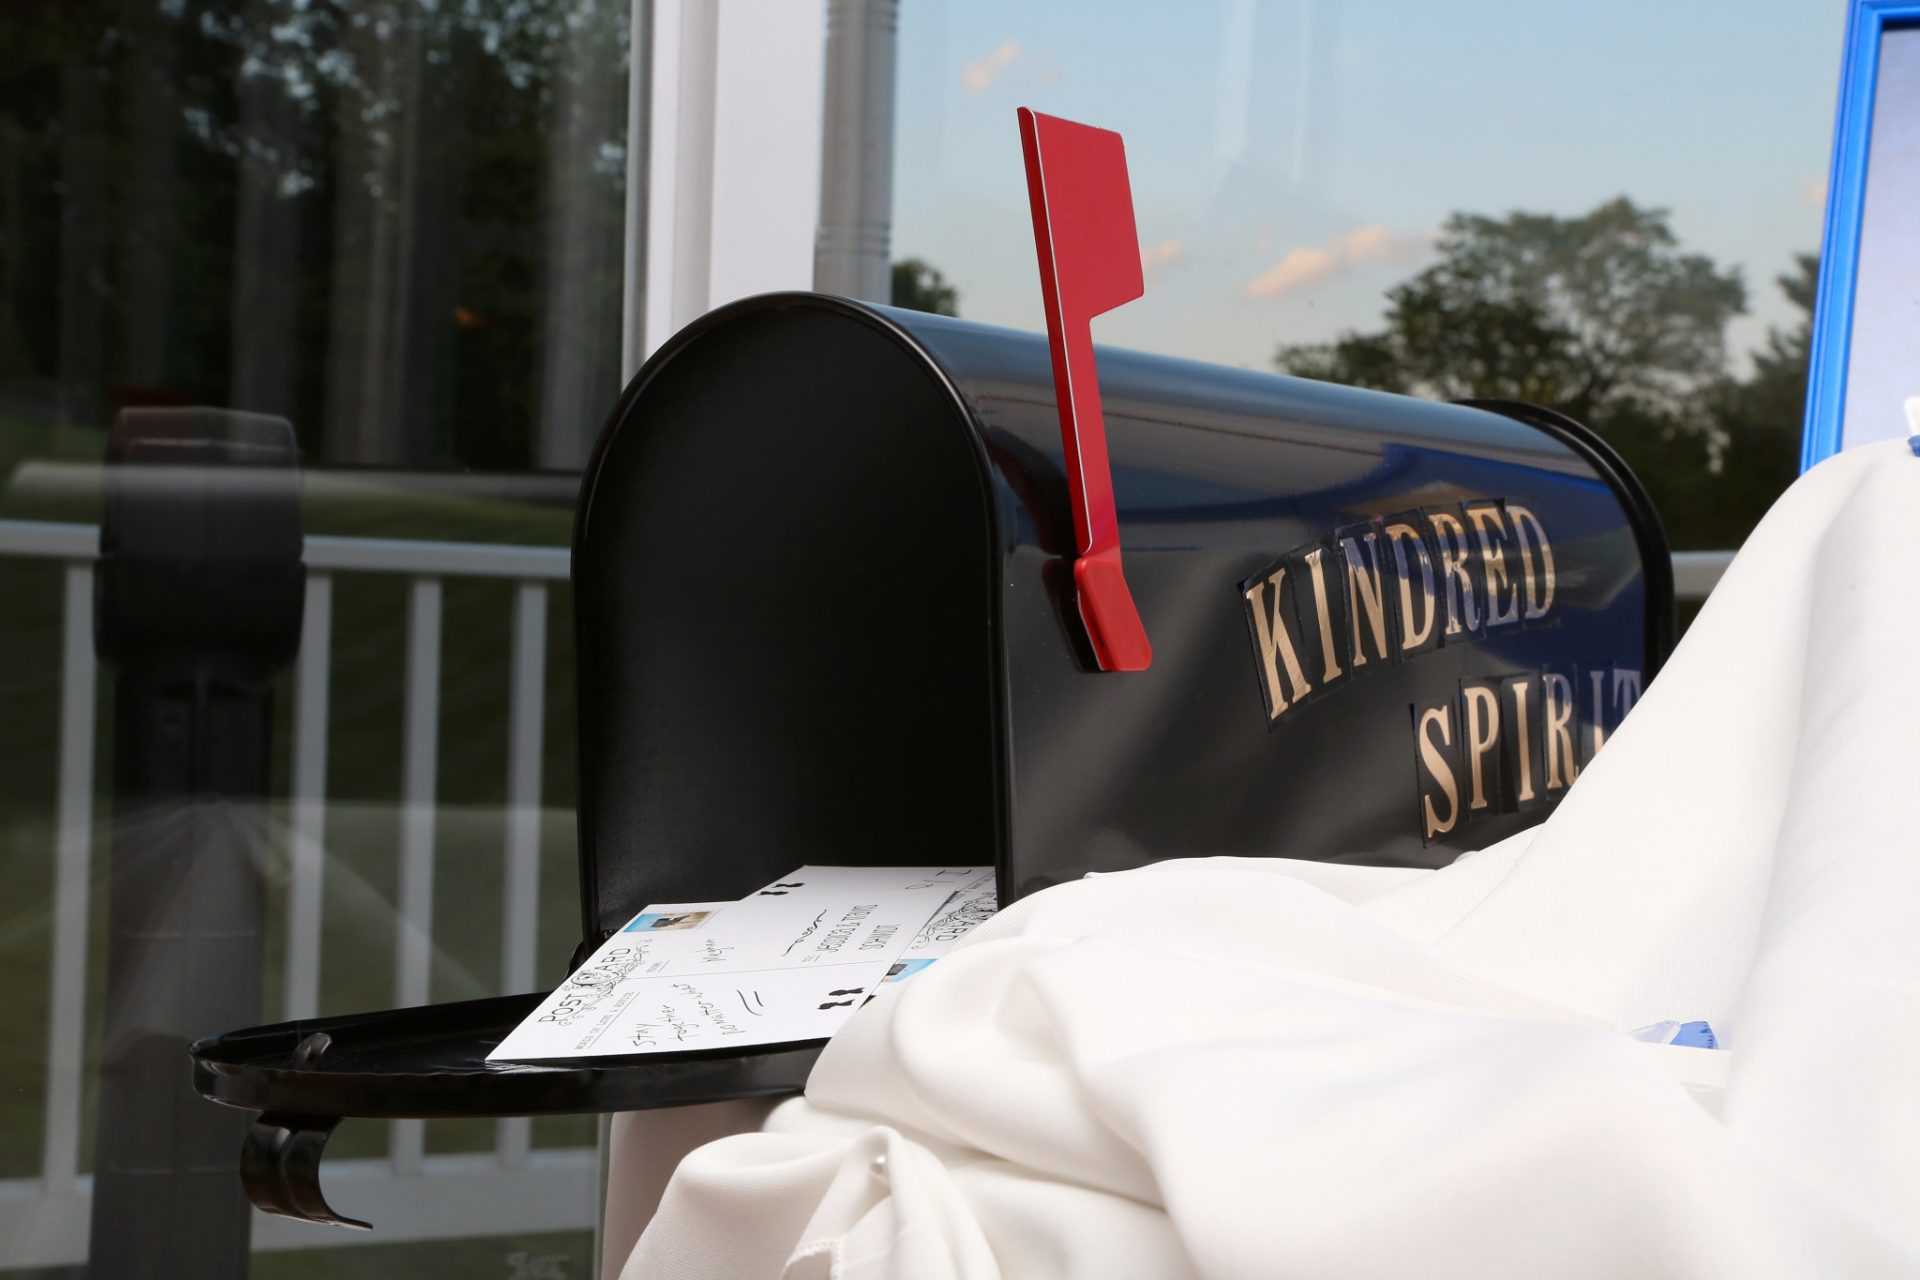 wedding mailbox for guests to place their post cards notes